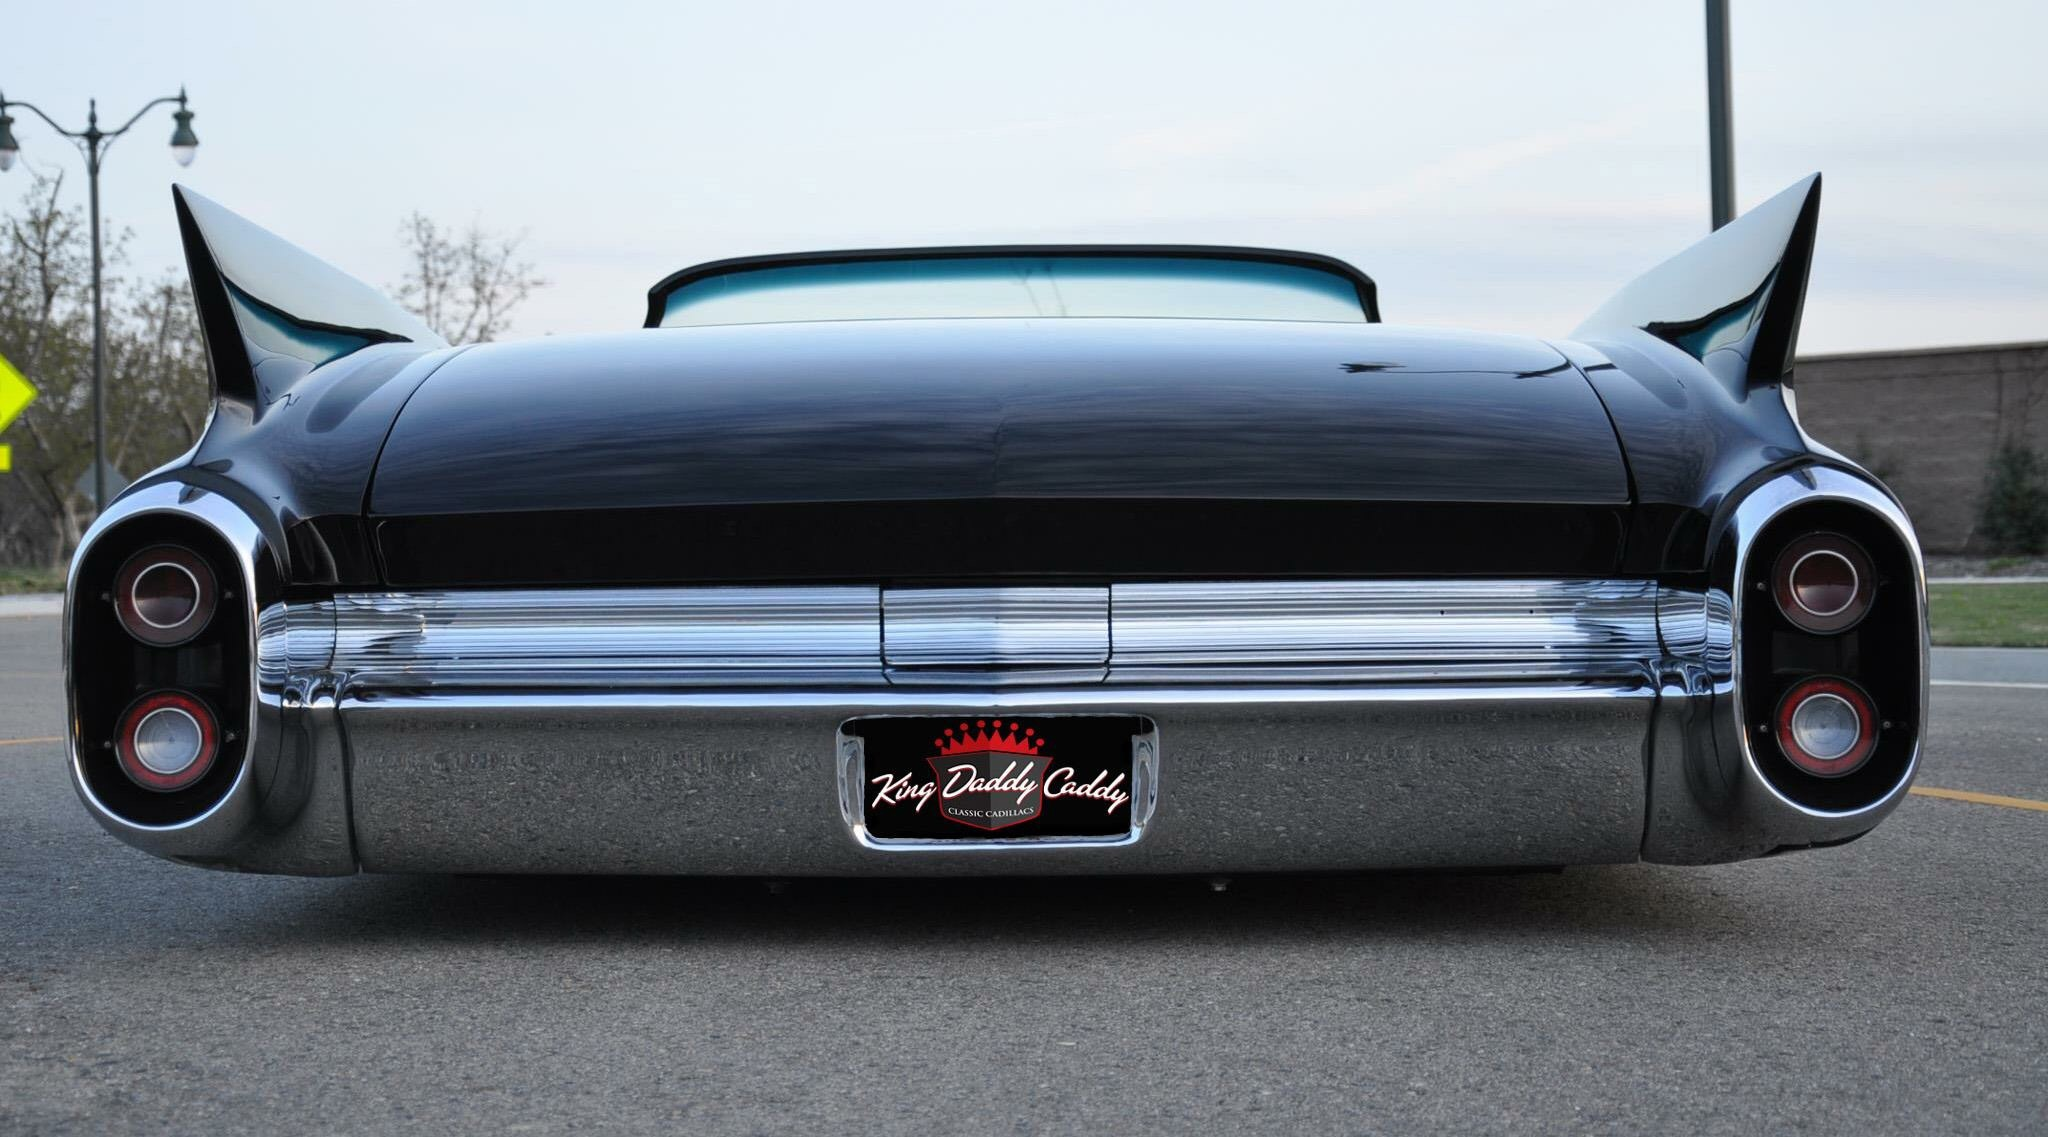 Severed Ties 1960 Cadillac Cruella Deville Justin Carrillo